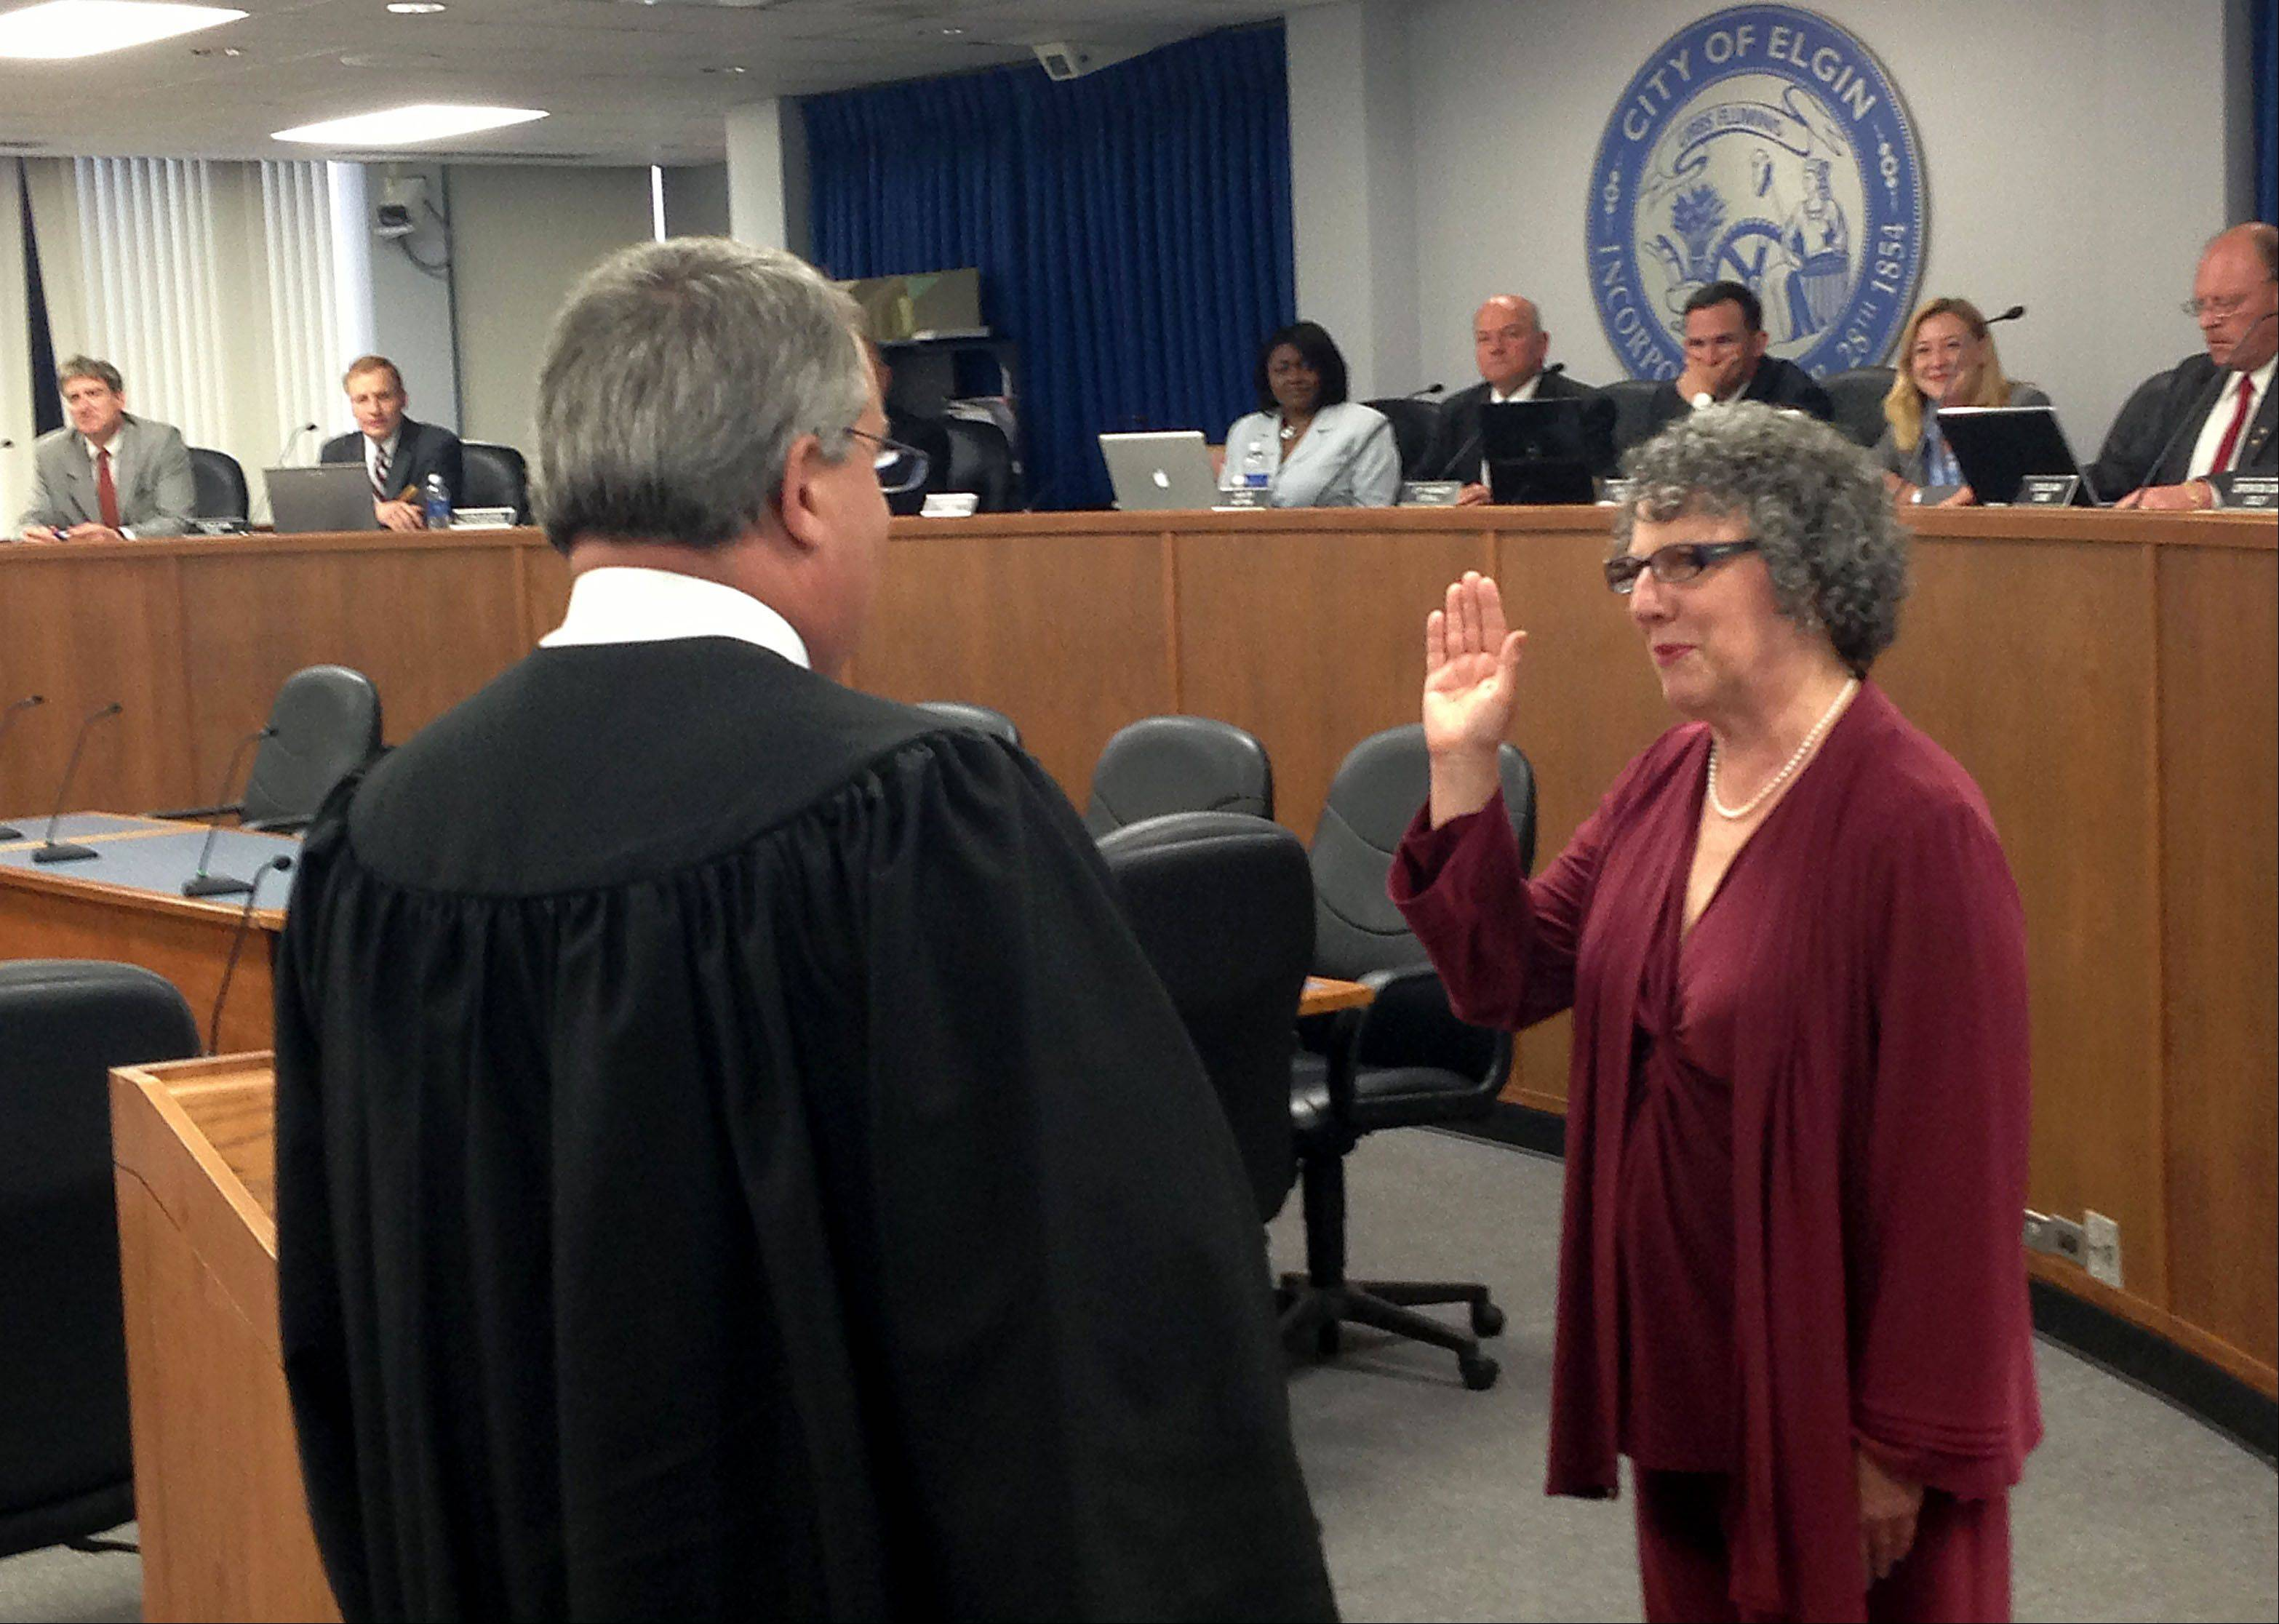 Newly elected Elgin councilwoman Carol Rauschenberger is sworn into office by Judge John G. Dalton, of the 16th Judicial Circuit in Kane County, on Wednesday night. There are now three women -- out of nine members -- on the Elgin City Council.